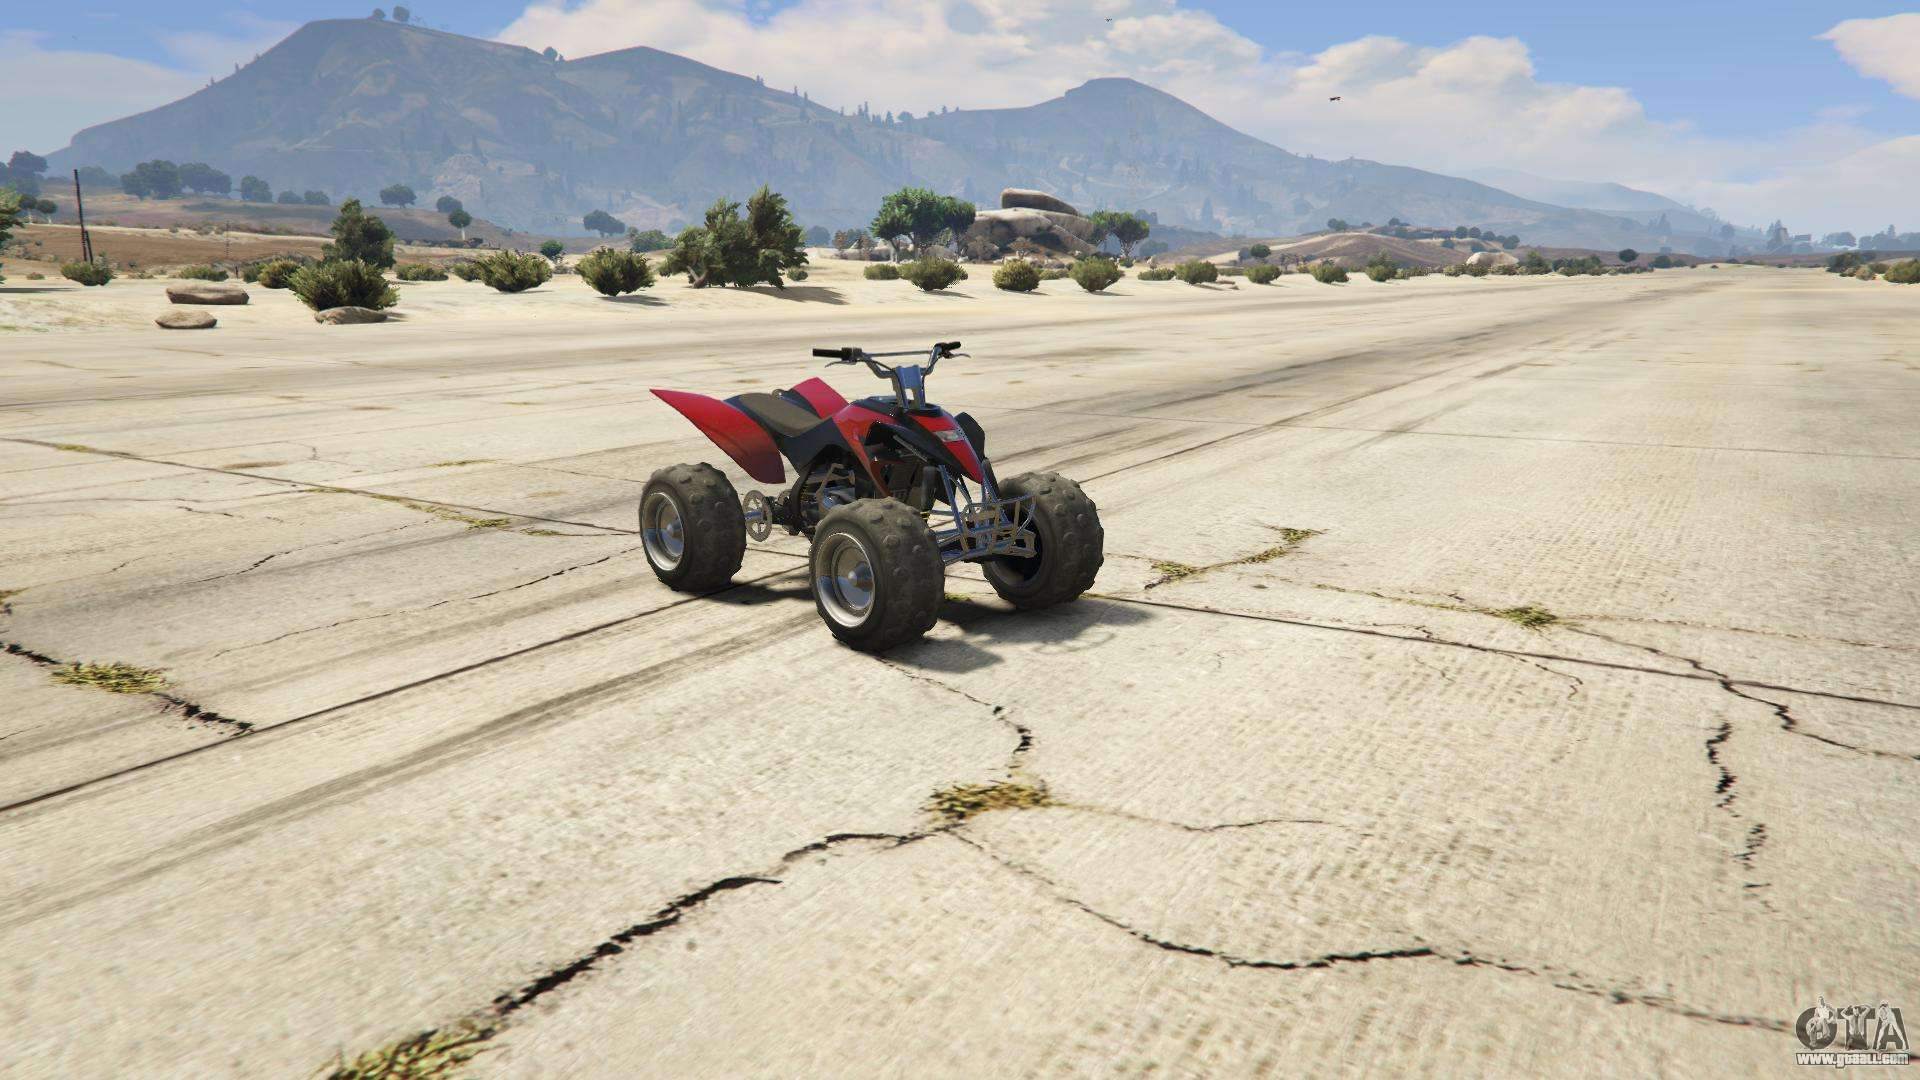 ... Blazer is a sports ATV that are available in GTA 5 and GTA Online